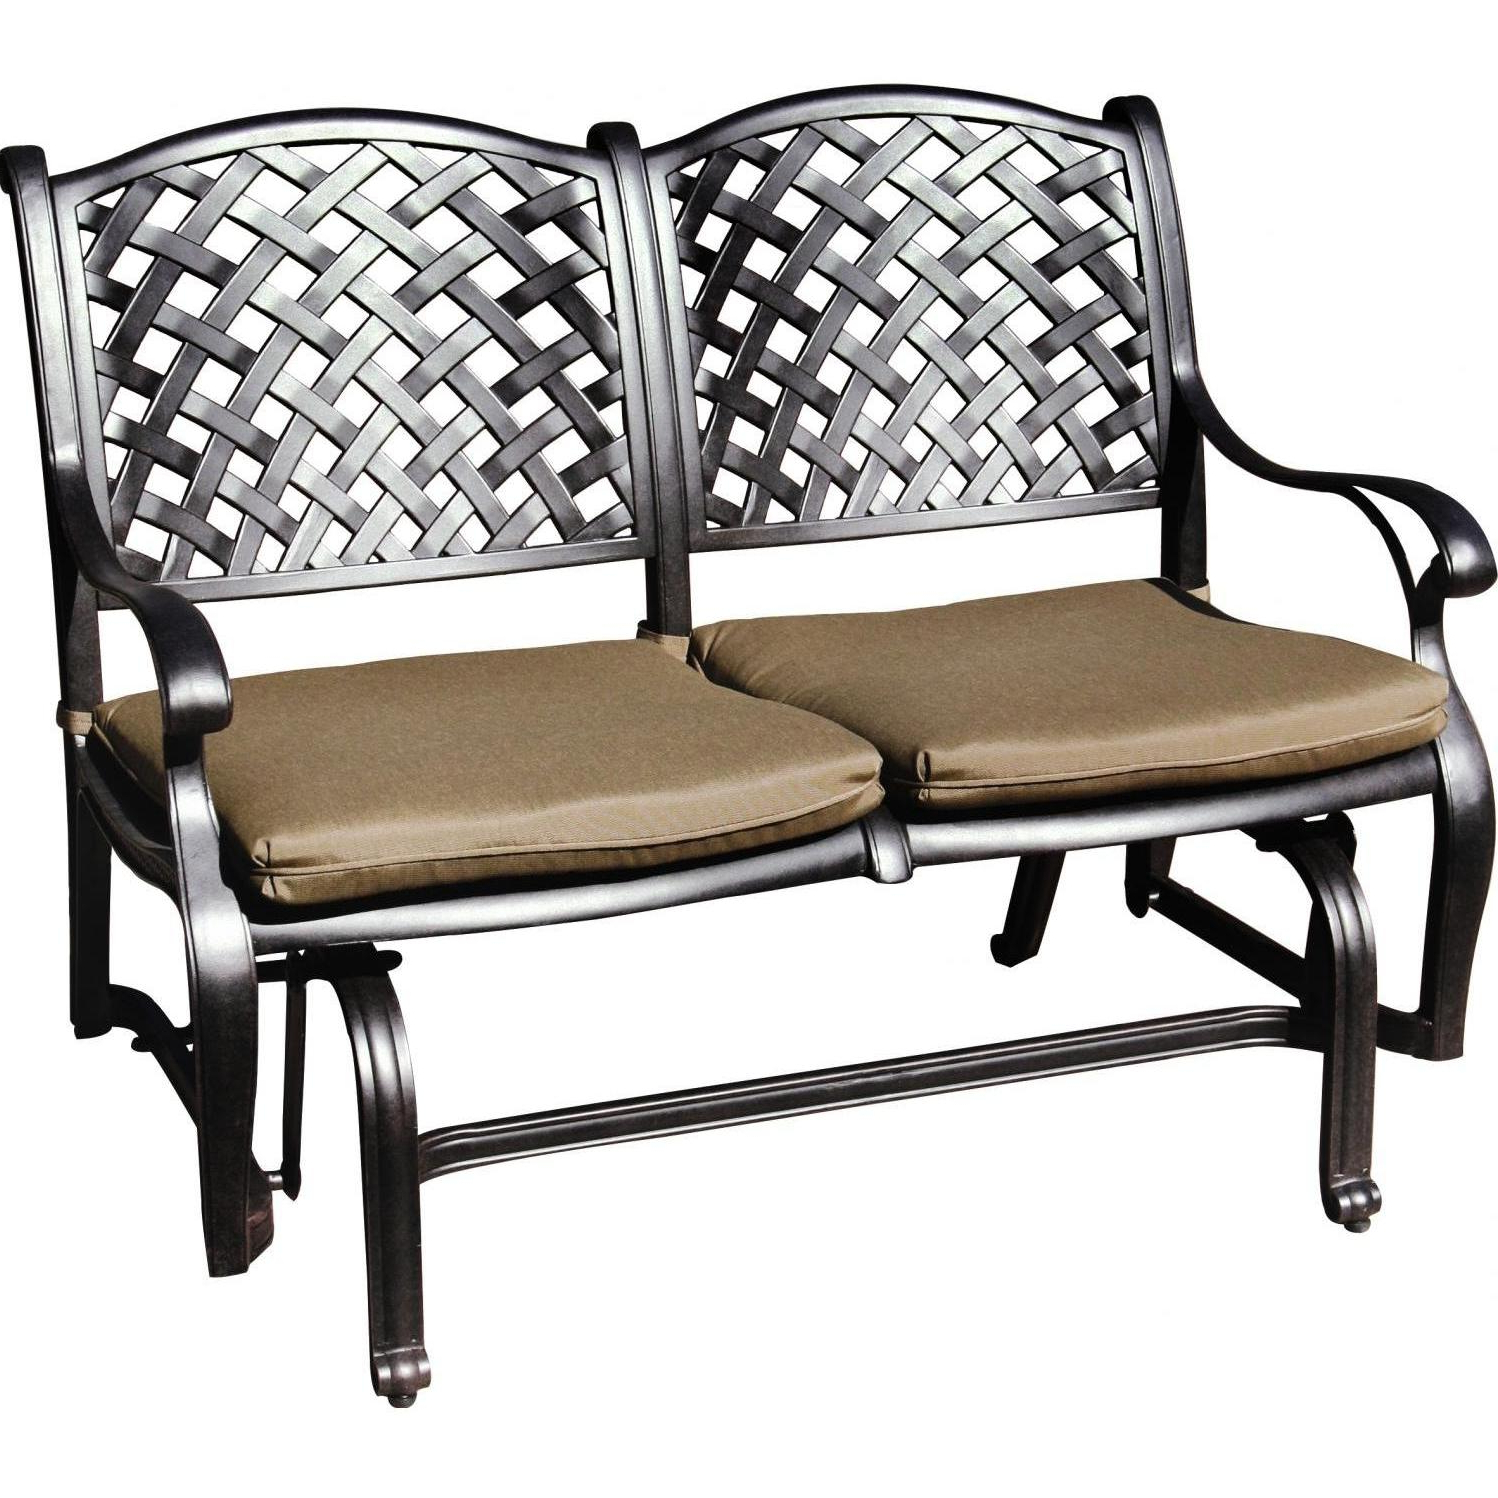 Darlee Nassau Cast Aluminum Patio Bench Glider Pertaining To Newest 1 Person Antique Black Steel Outdoor Gliders (View 8 of 25)